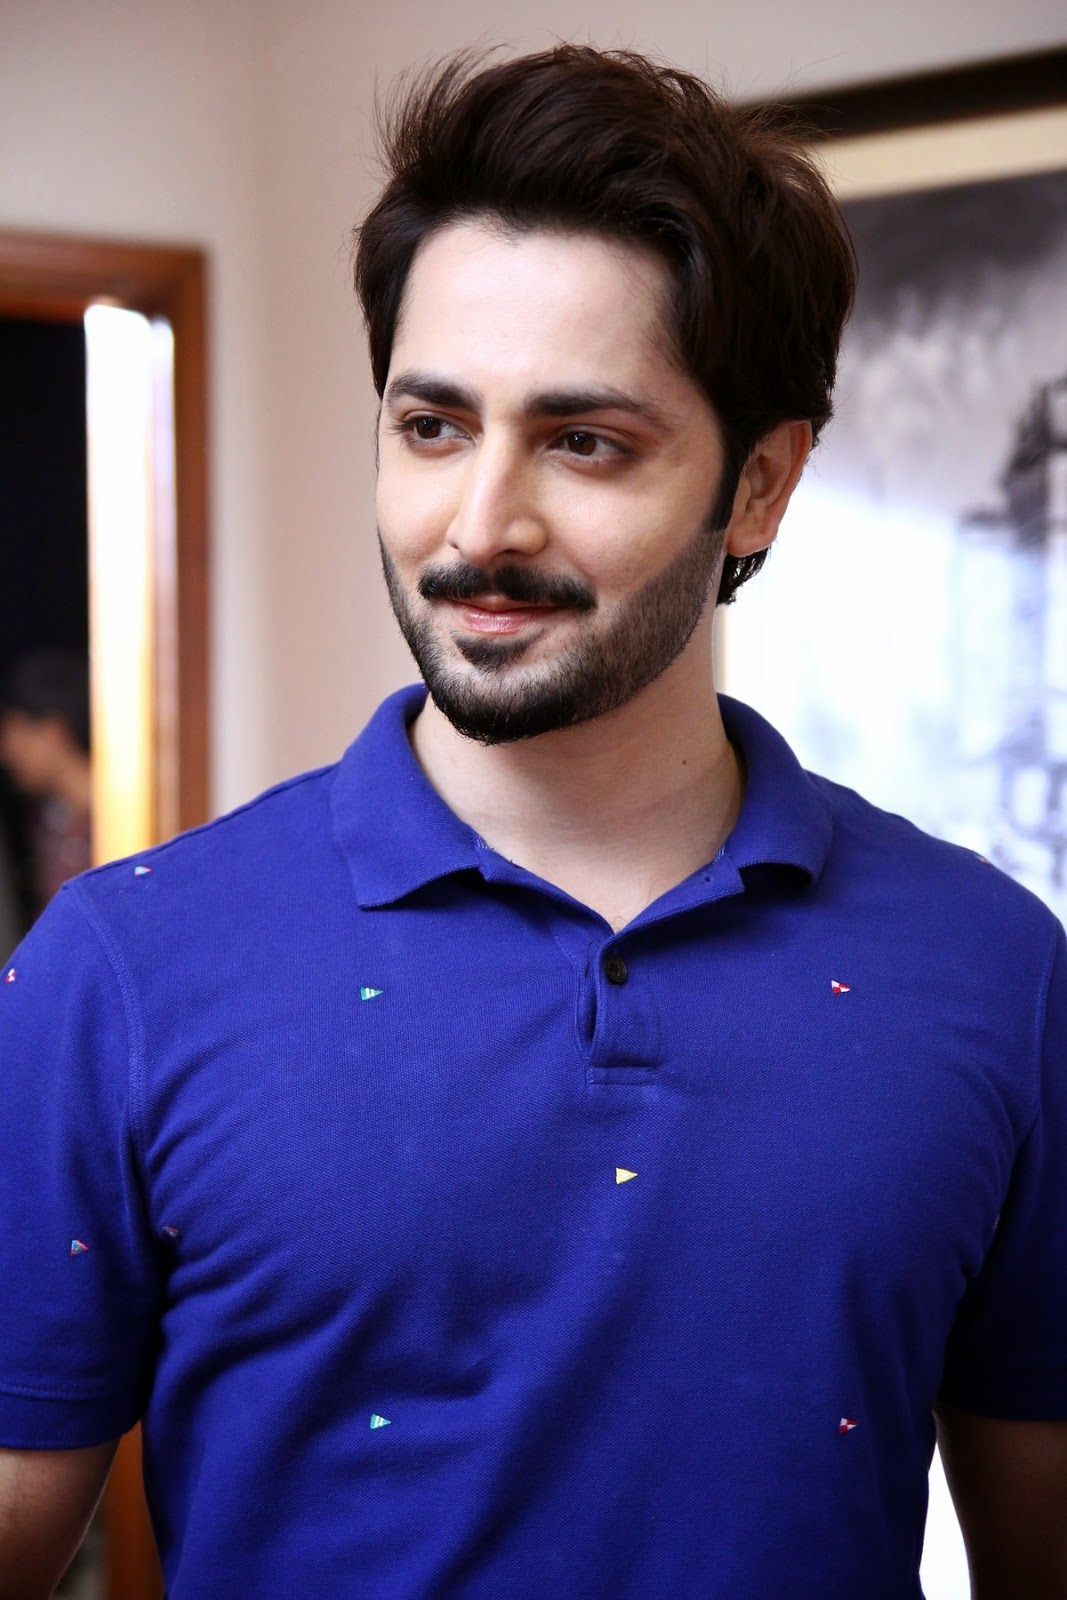 who is who in karachi danish taimoor it s easy to choose a career but it s hard to deliver your best all the time unless you are absolutely passionate about your work